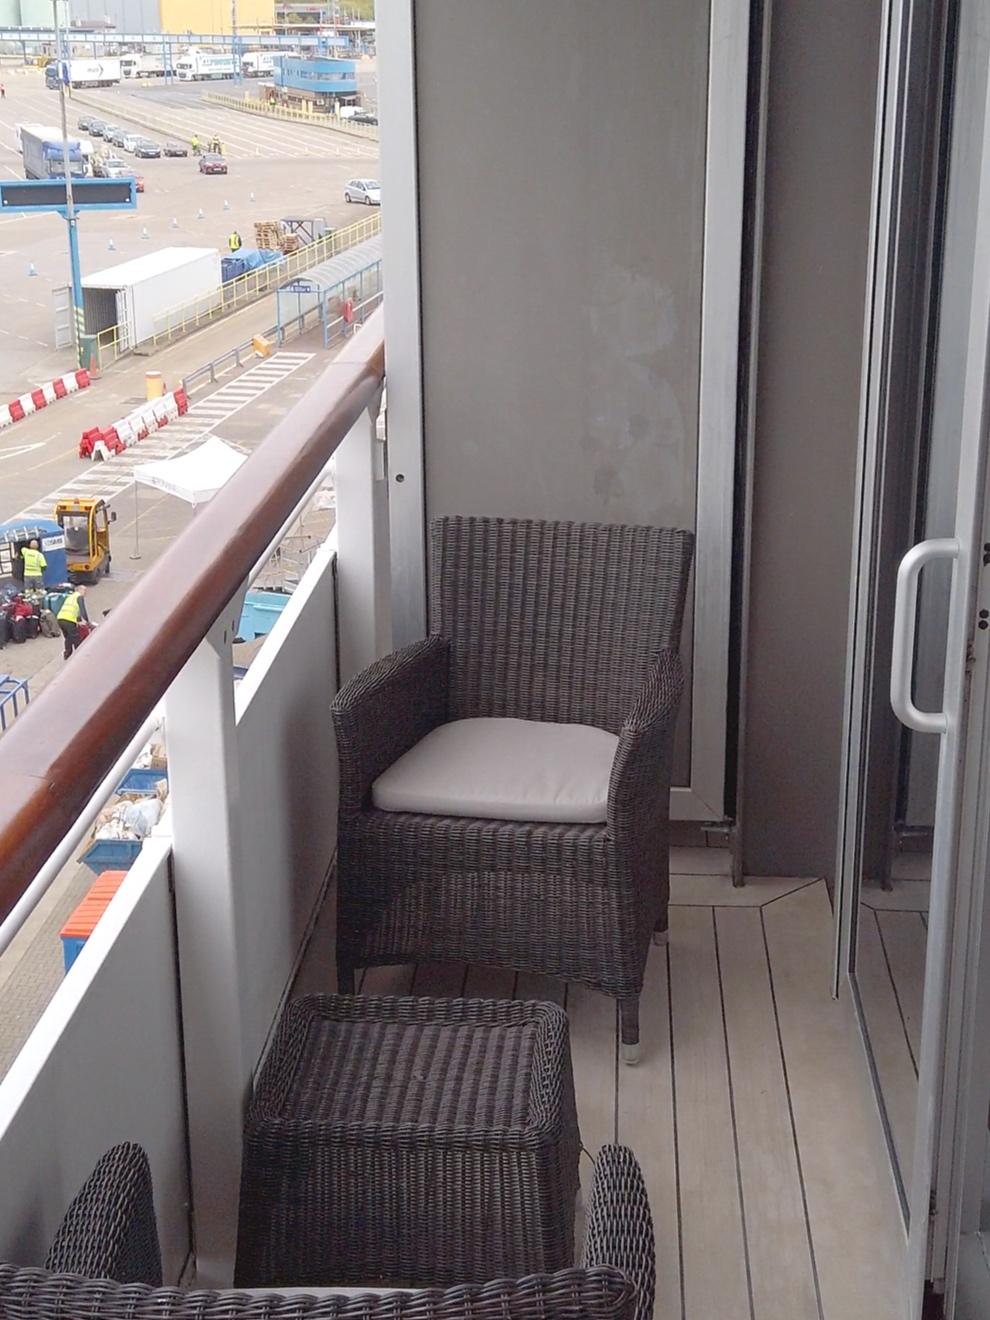 The rather 'snug' balcony - we loved the furniture though.